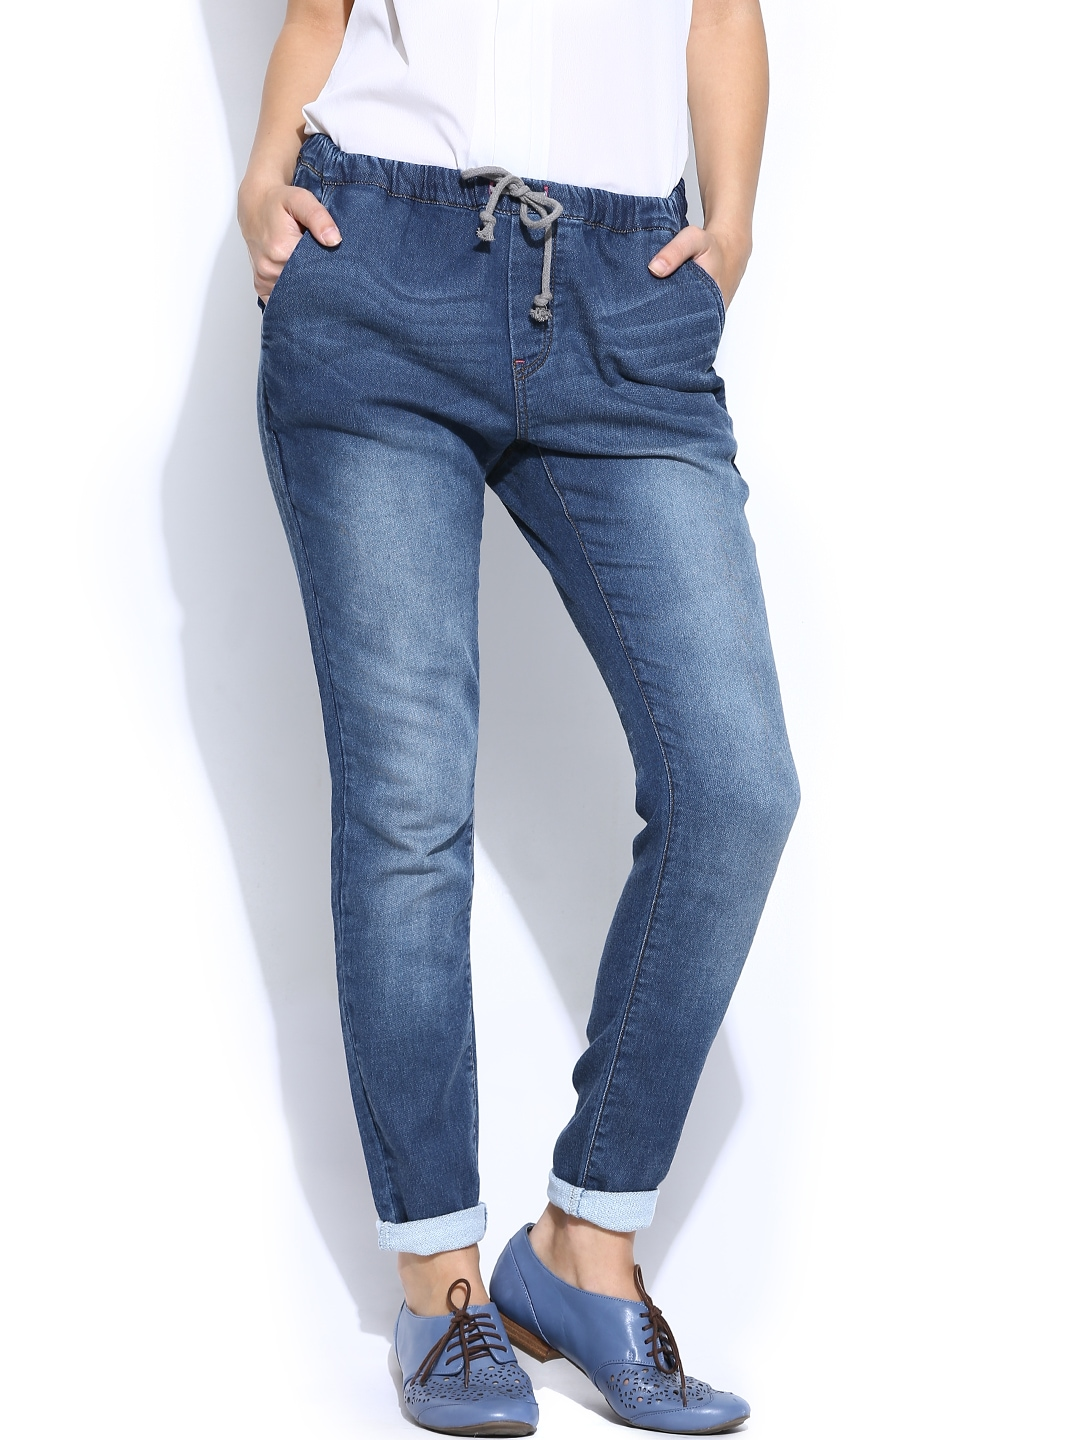 myntra vero moda blue jogger fit jeans 786184 buy myntra vero moda jeans at best price online. Black Bedroom Furniture Sets. Home Design Ideas